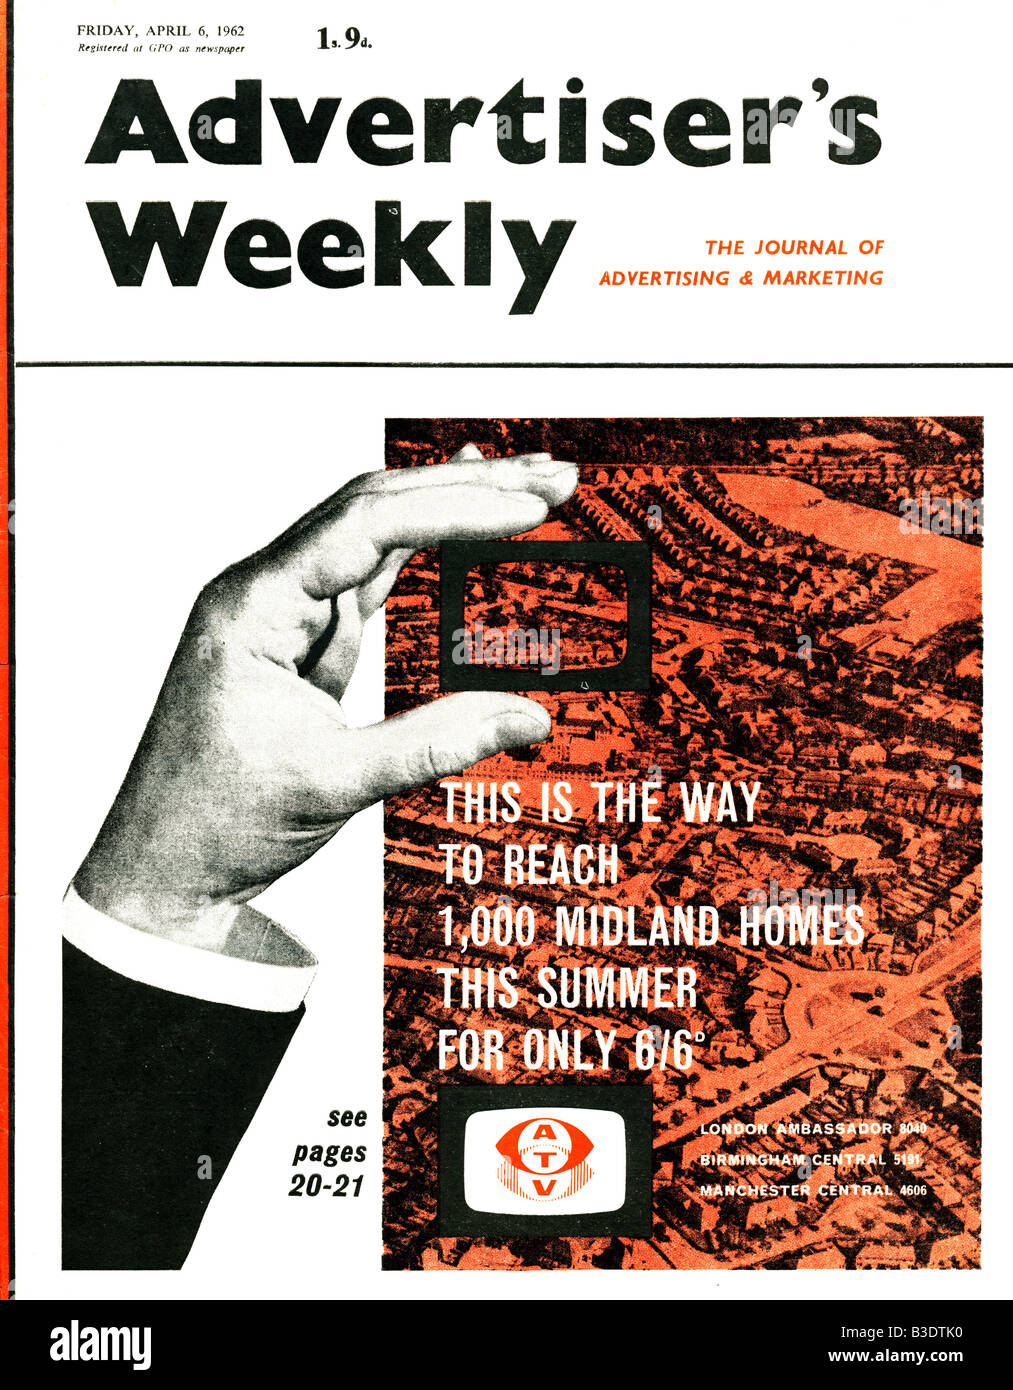 Advertiser's Weekly Journal Magazine 6 April 1962 with front cover Advertisement for ATV Television FOR EDITORIAL - Stock Image